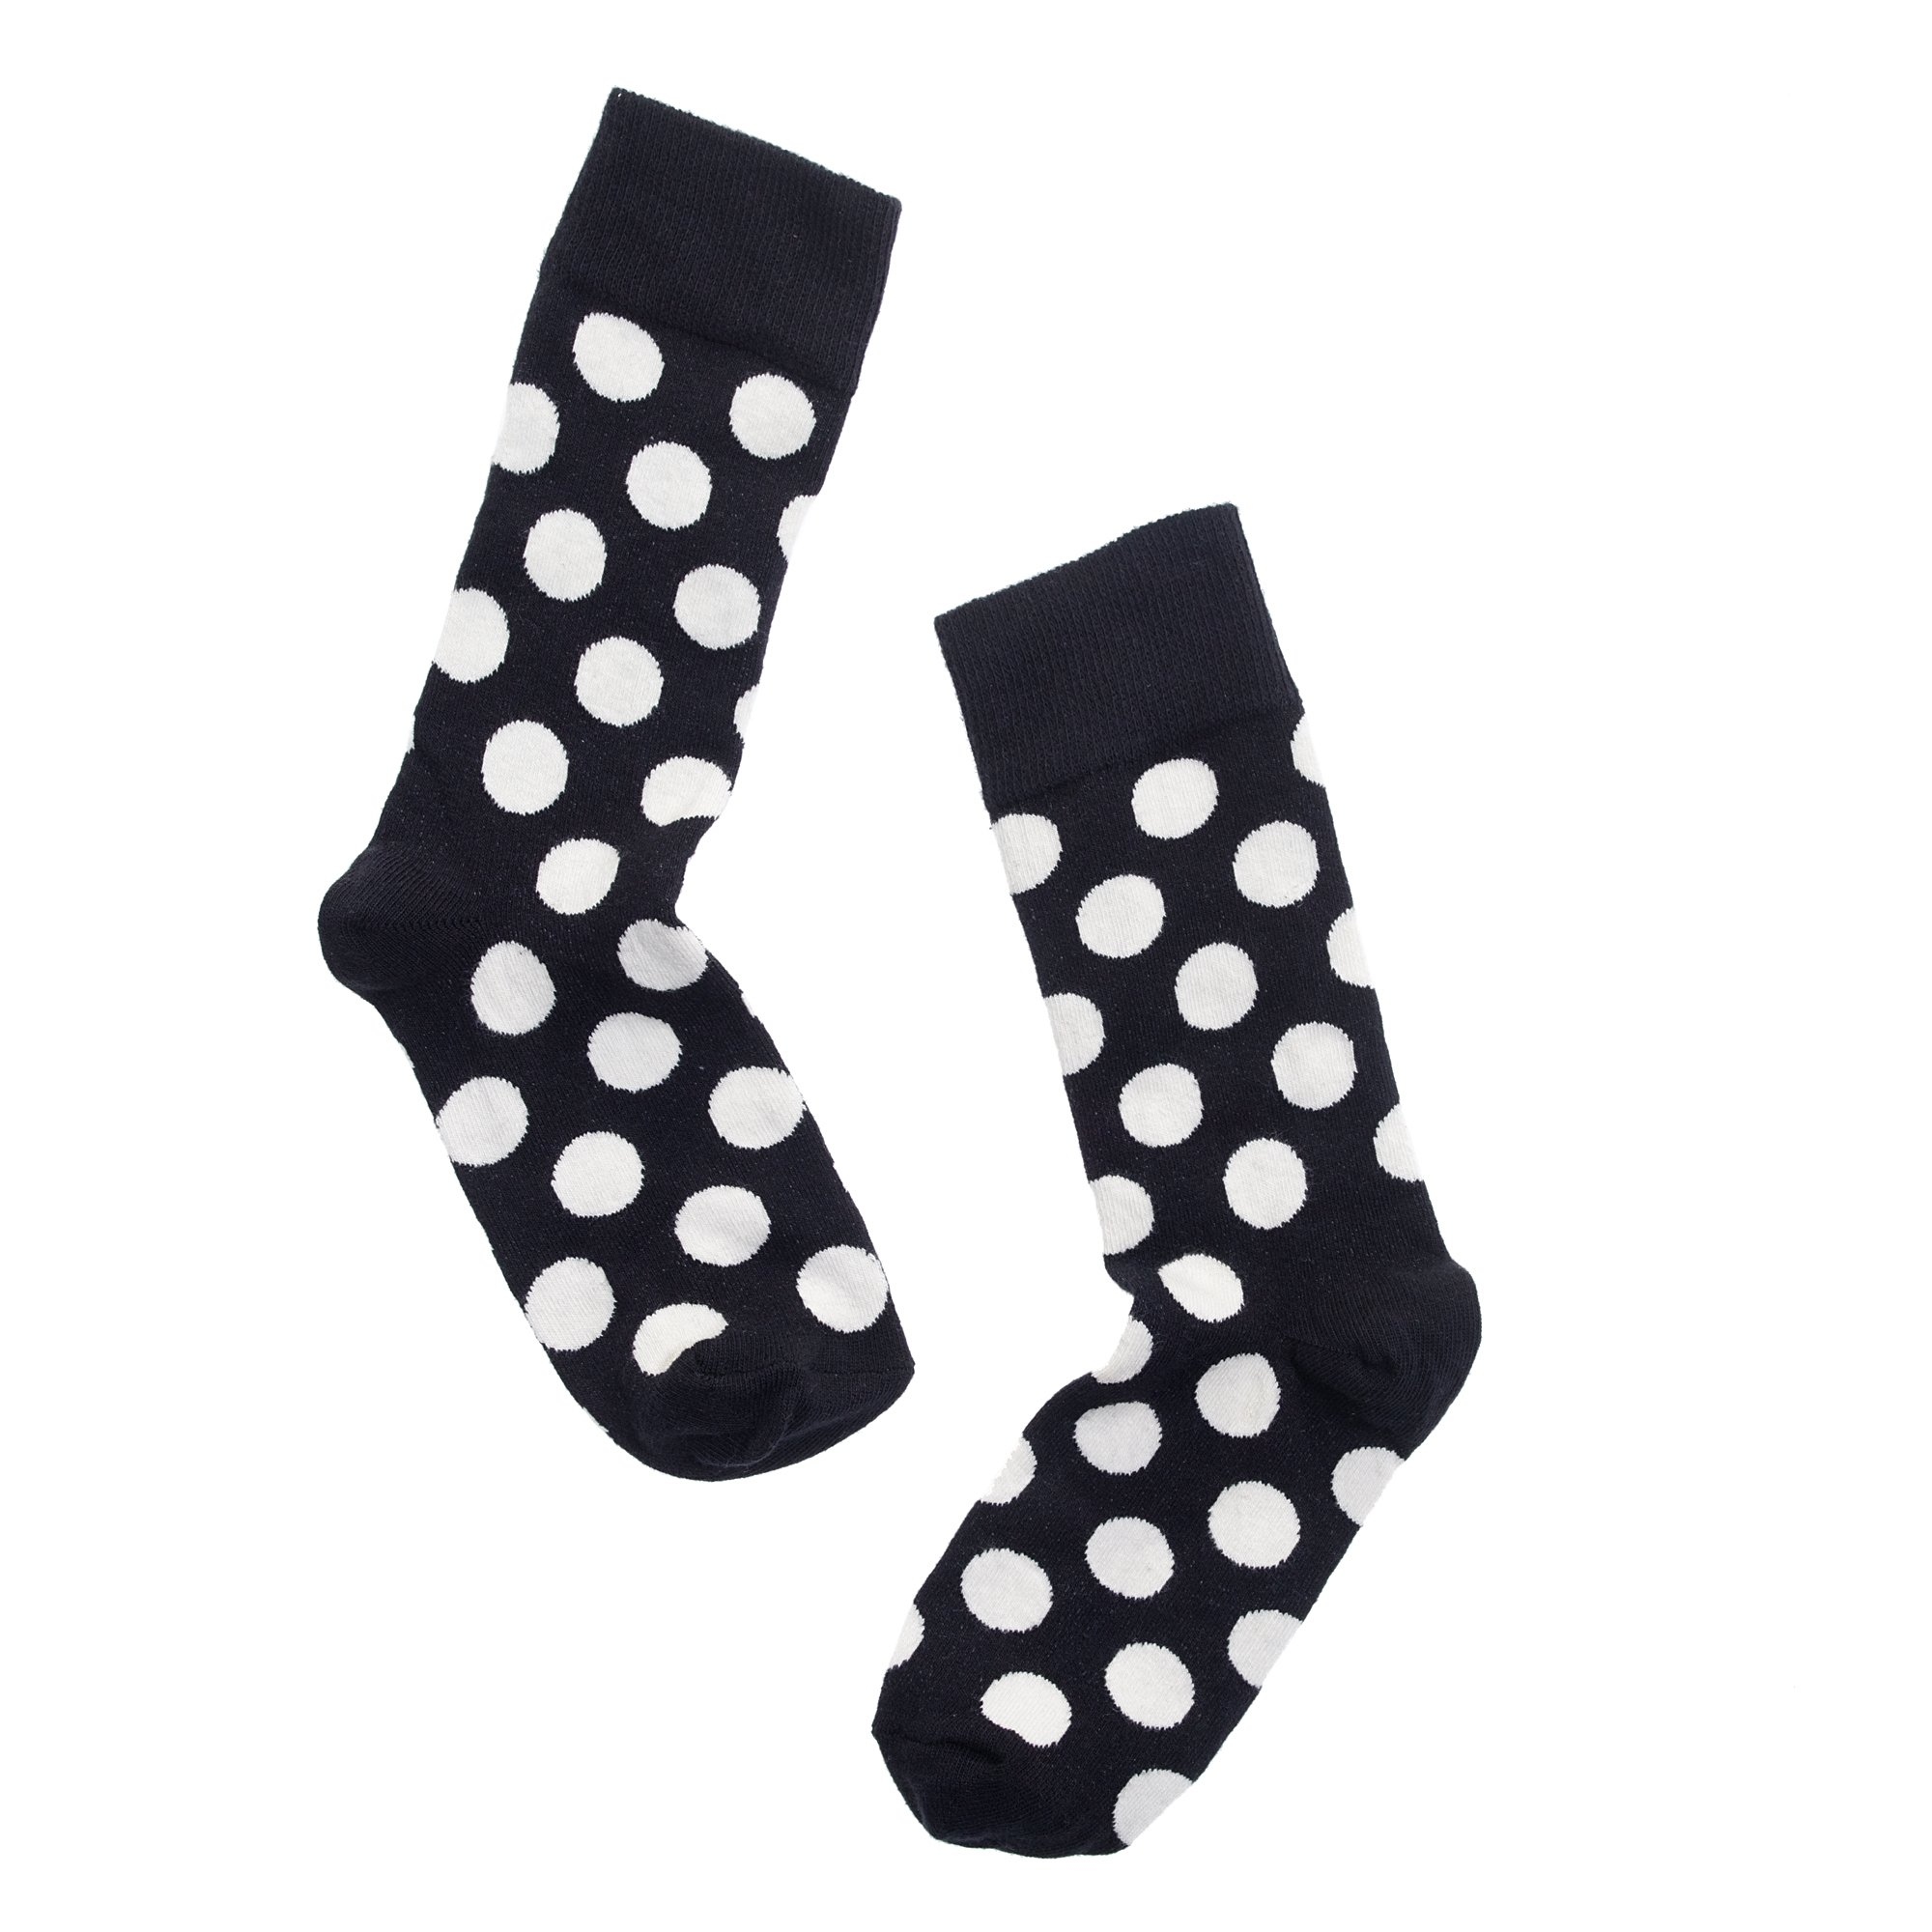 Potos biq black sock